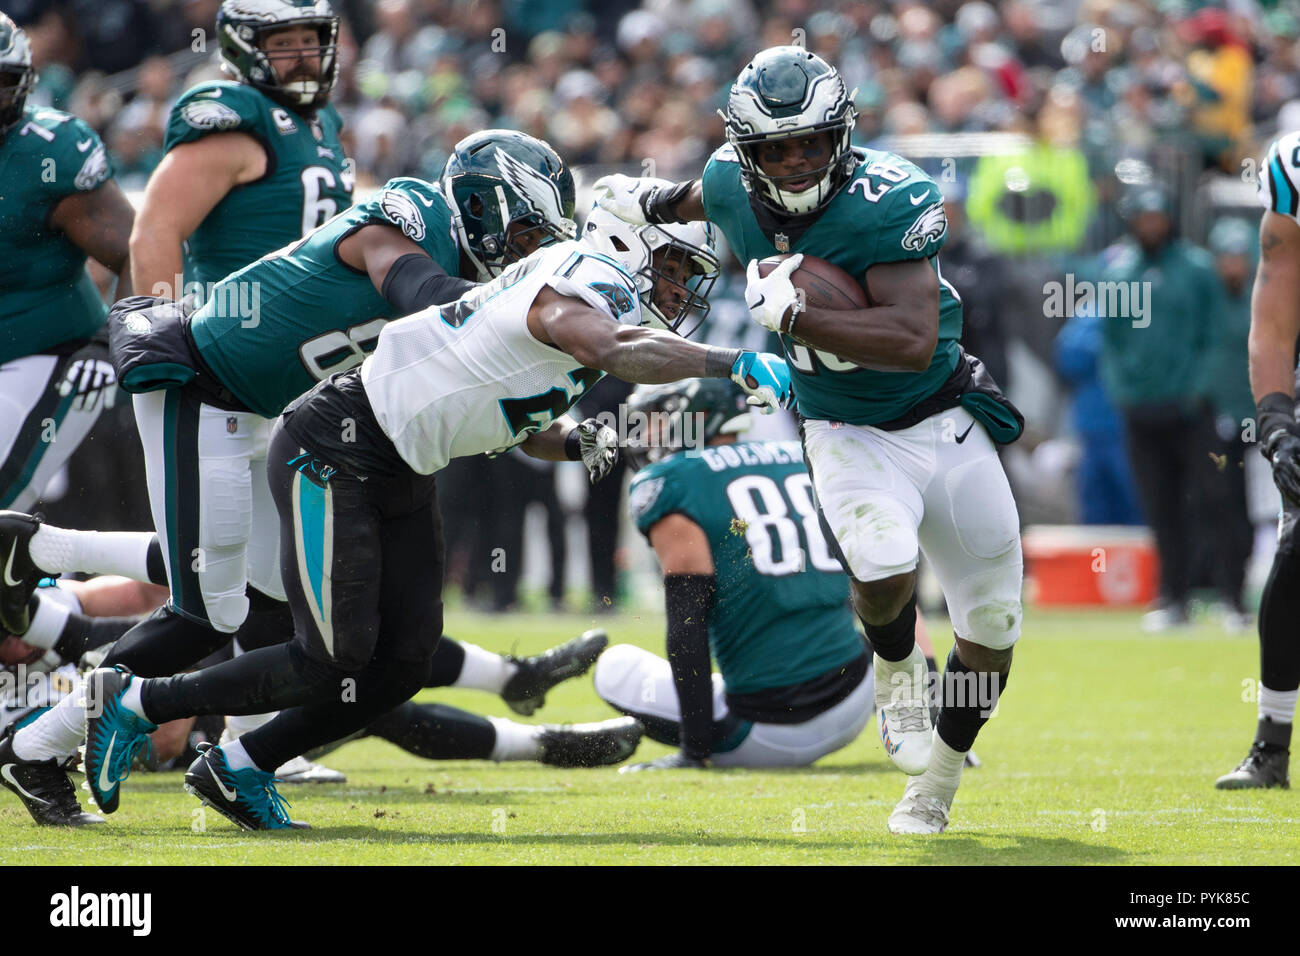 Philadelphia, Pennsylvania, USA. 21st Oct, 2018. Philadelphia Eagles running back Wendell Smallwood (28) runs with the ball during the NFL game between the Carolina Panthers and the Philadelphia Eagles at Lincoln Financial Field in Philadelphia, Pennsylvania. Christopher Szagola/CSM/Alamy Live News - Stock Image